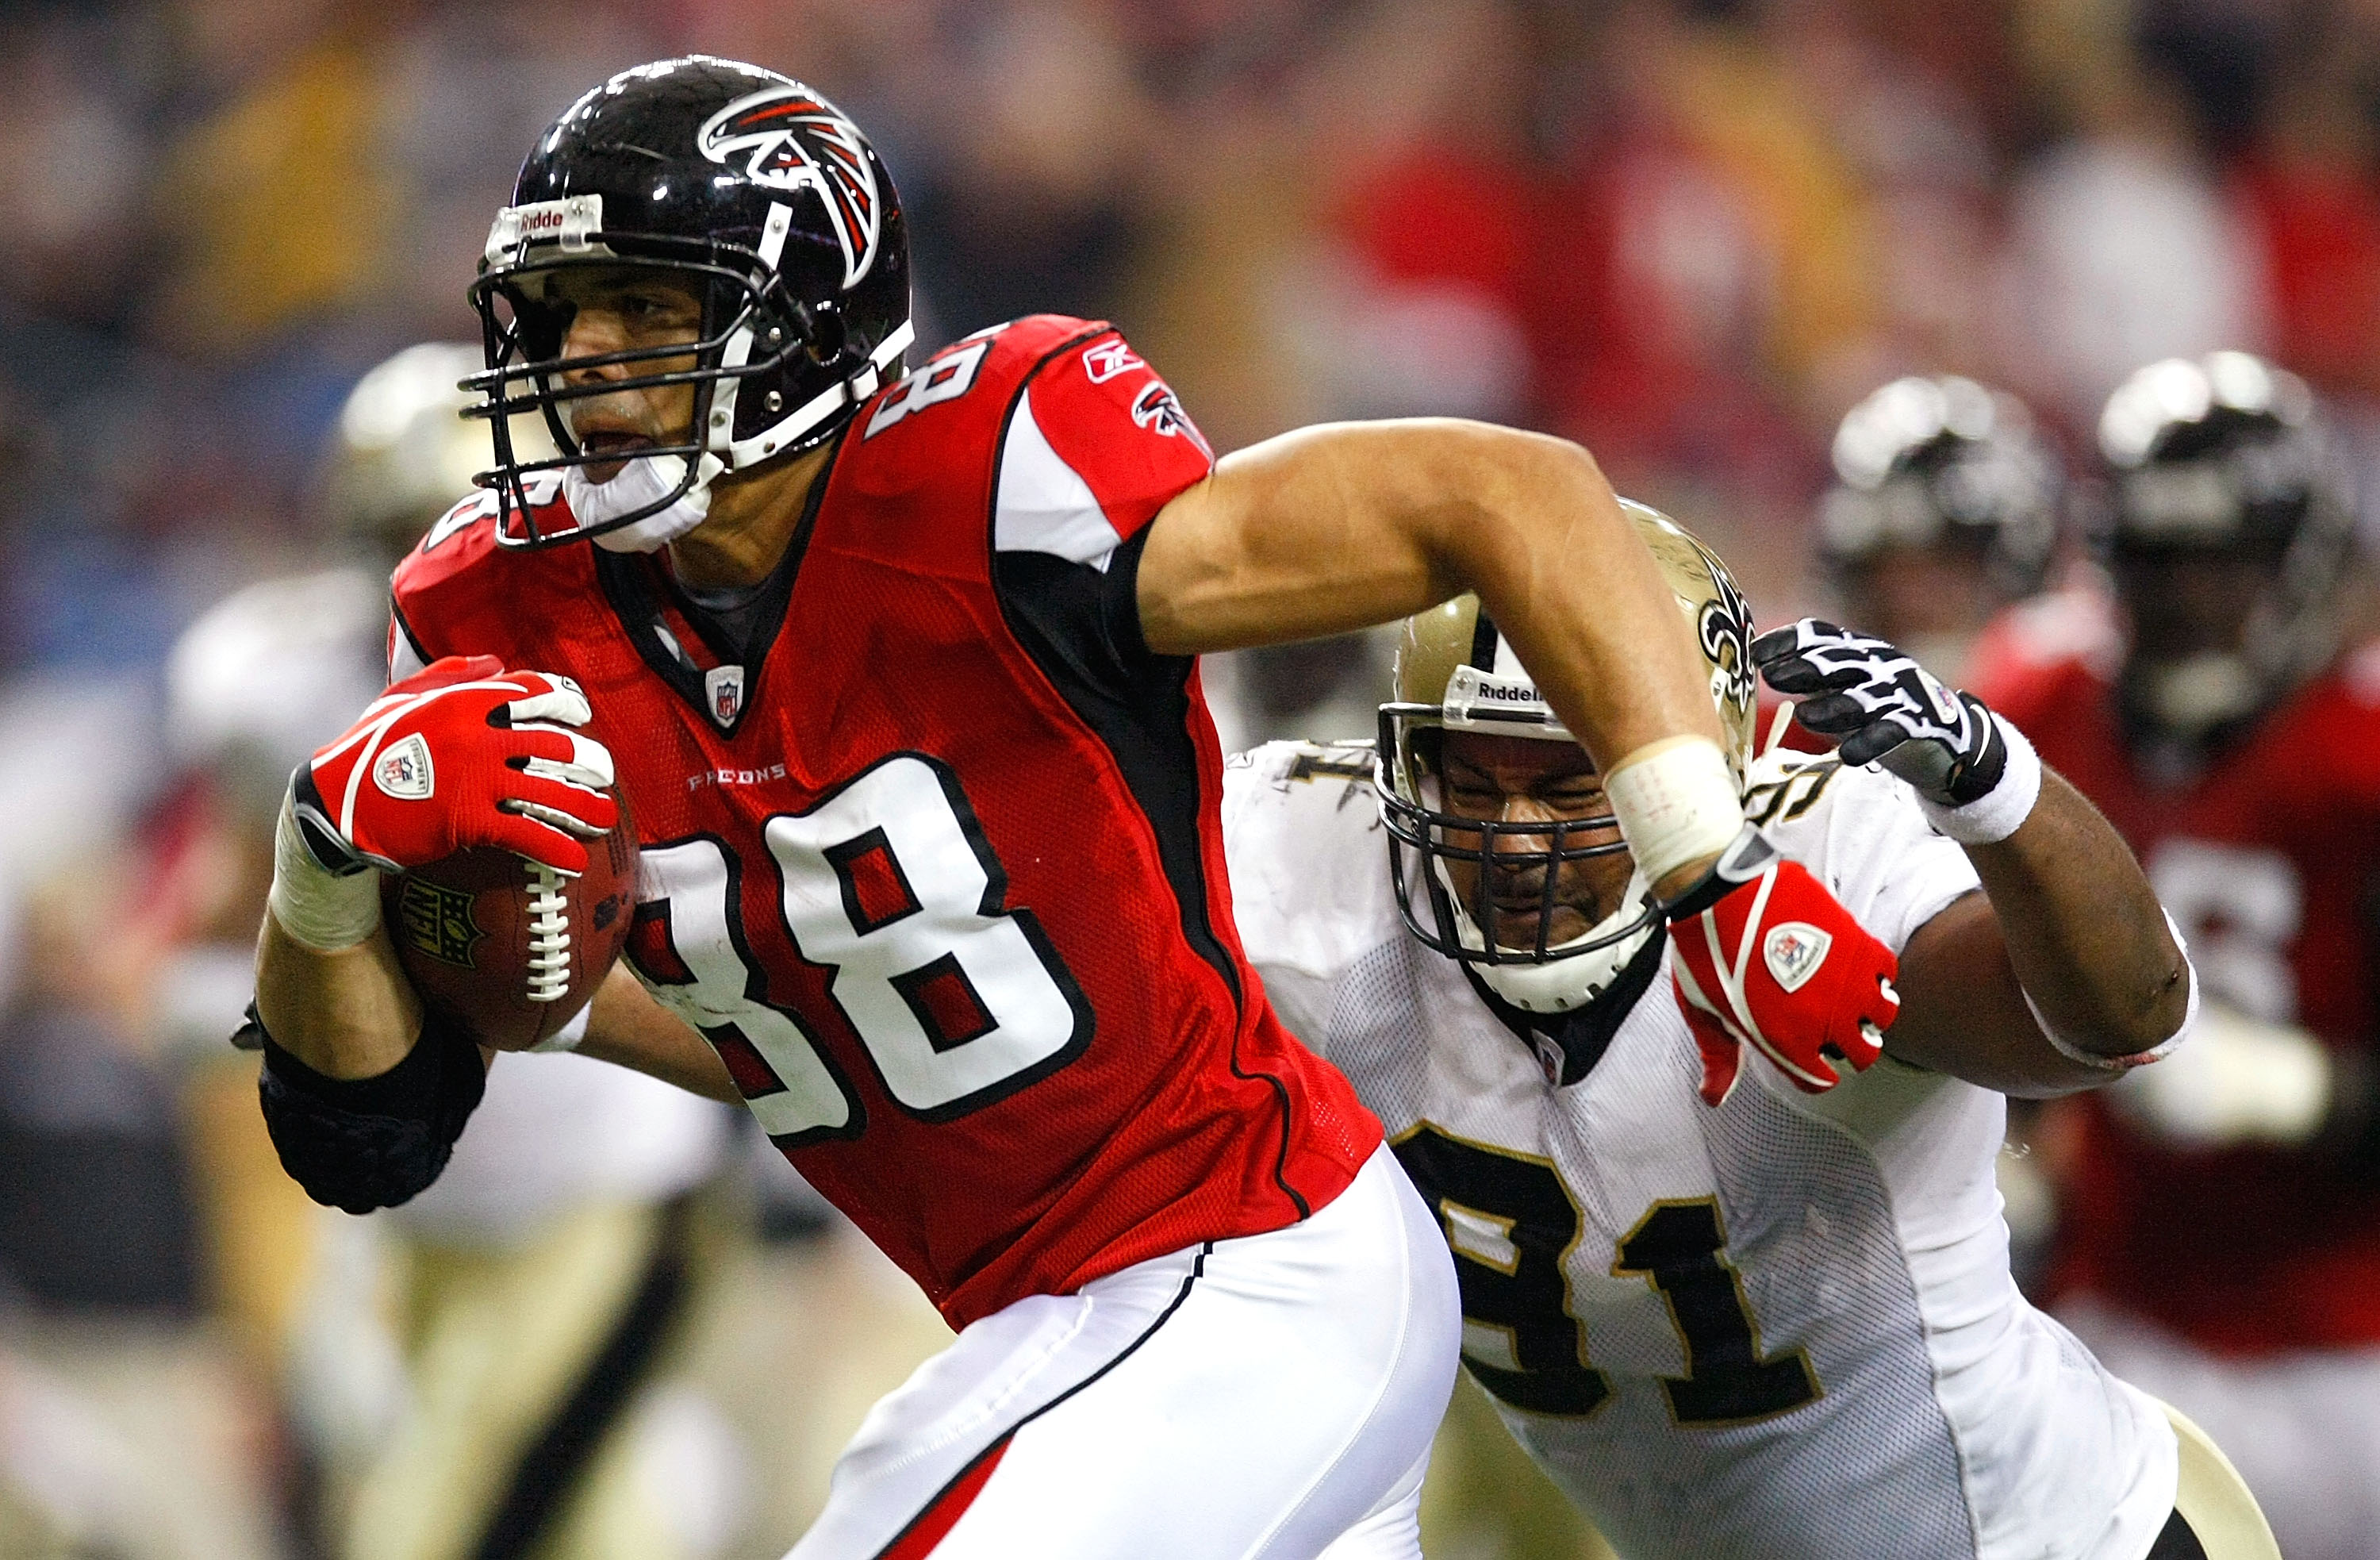 ATLANTA - DECEMBER 13:  Tony Gonzalez #88 of the Atlanta Falcons runs for yards after the catch against Will Smith #91 of the New Orleans Saints at Georgia Dome on December 13, 2009 in Atlanta, Georgia. The Saints won 26-23. (Photo by Kevin C. Cox/Getty I